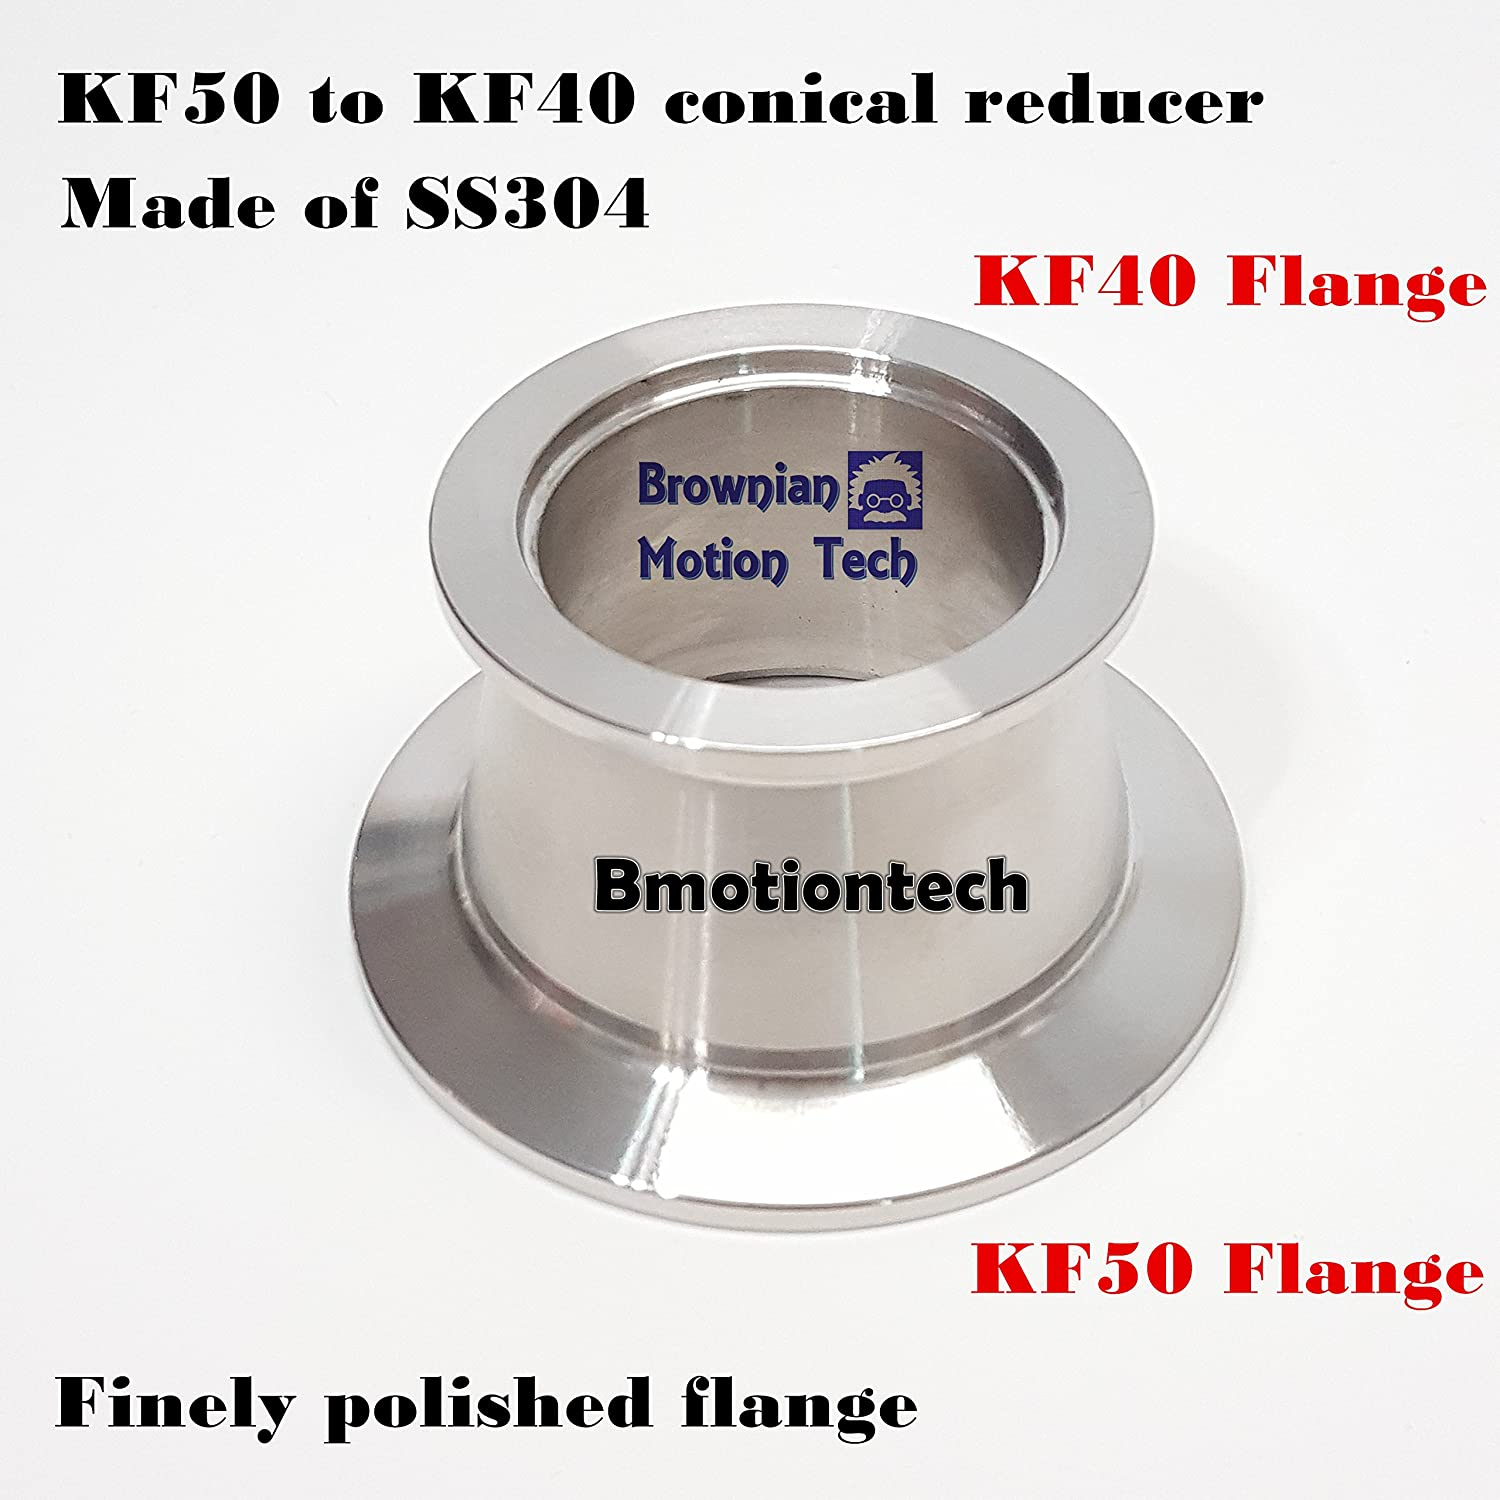 _BMT_ KF50 flange to KF40 Flange vacuum conical reducer, made of SS304, QF